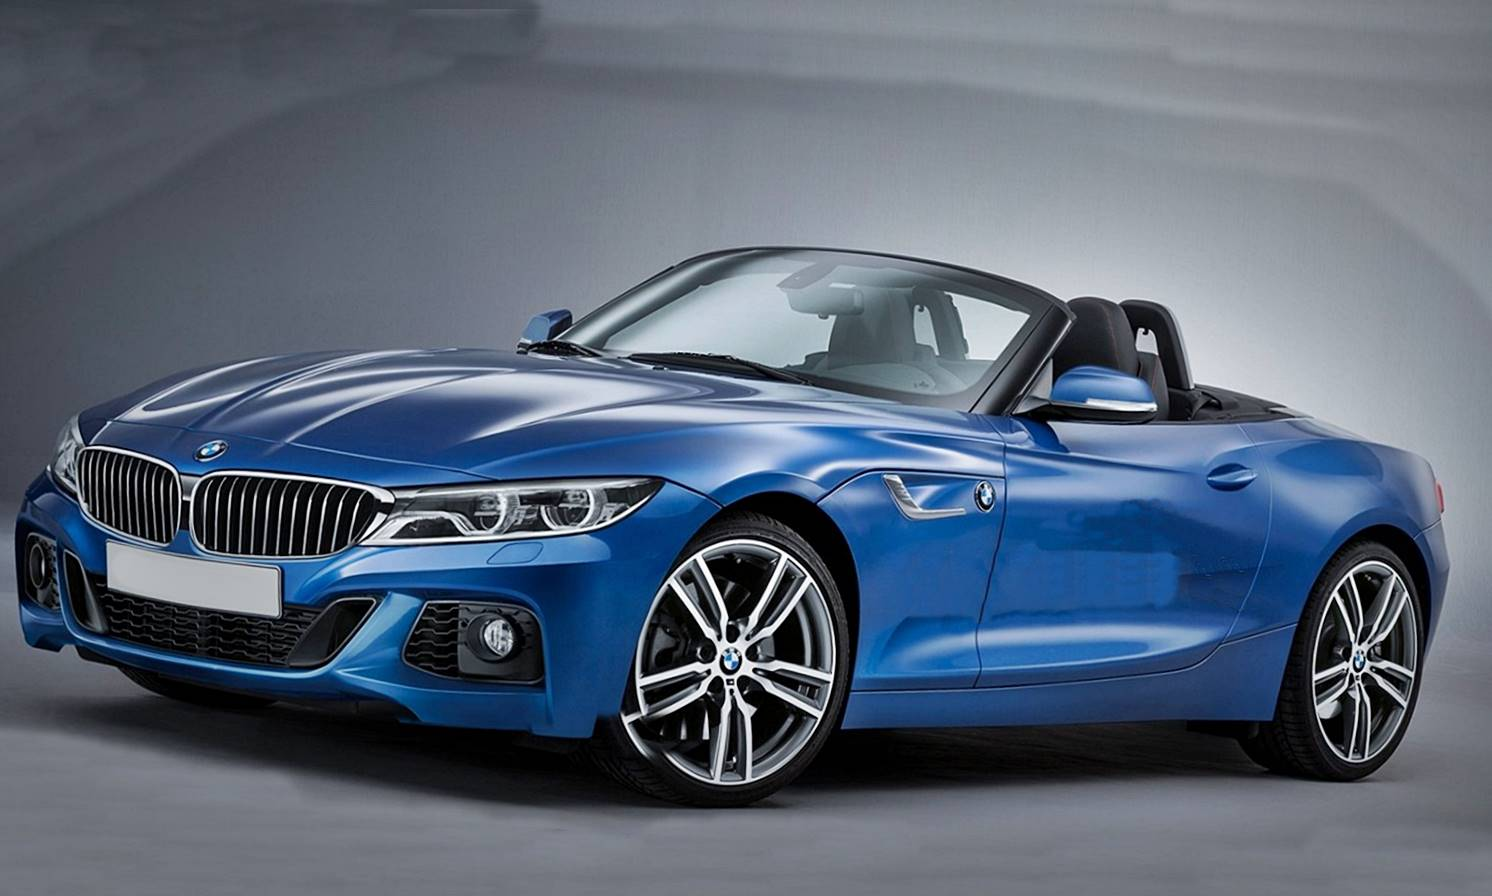 2018 bmw z4 review auto bmw review. Black Bedroom Furniture Sets. Home Design Ideas